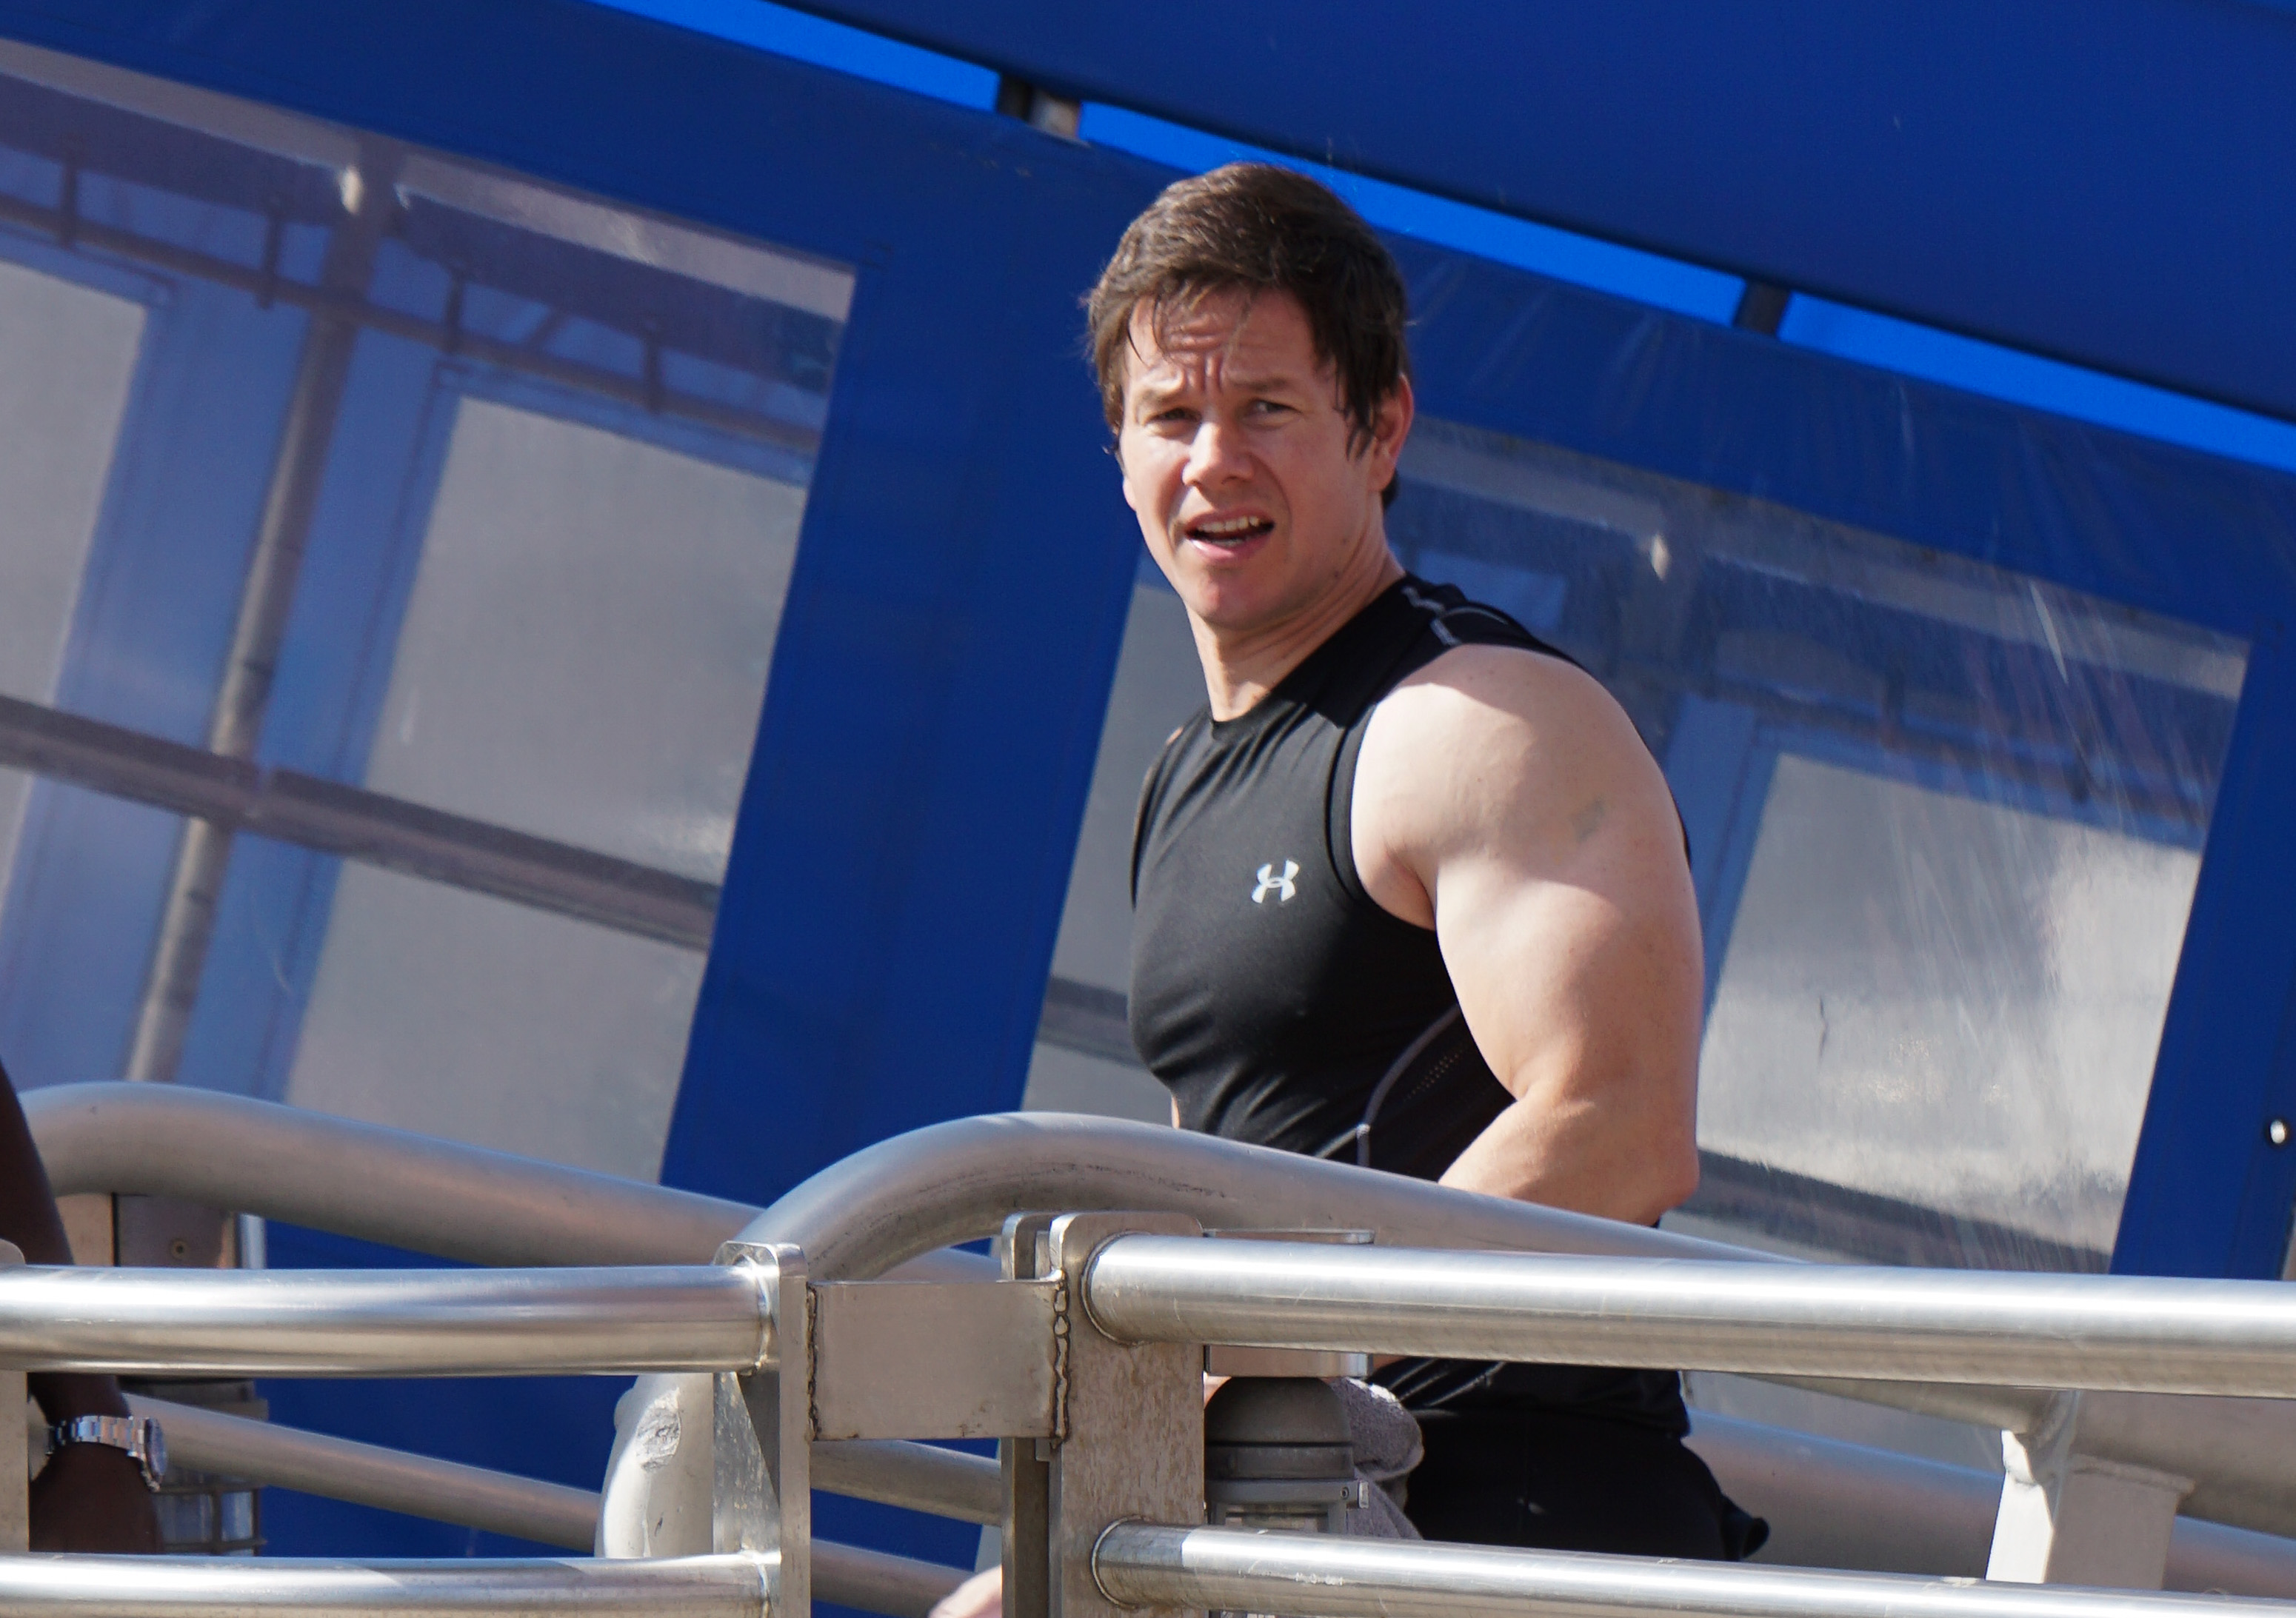 Mark Wahlberg is seen on the set of 'Ted 2' on August 08, 2014 in Boston, Massachusetts.